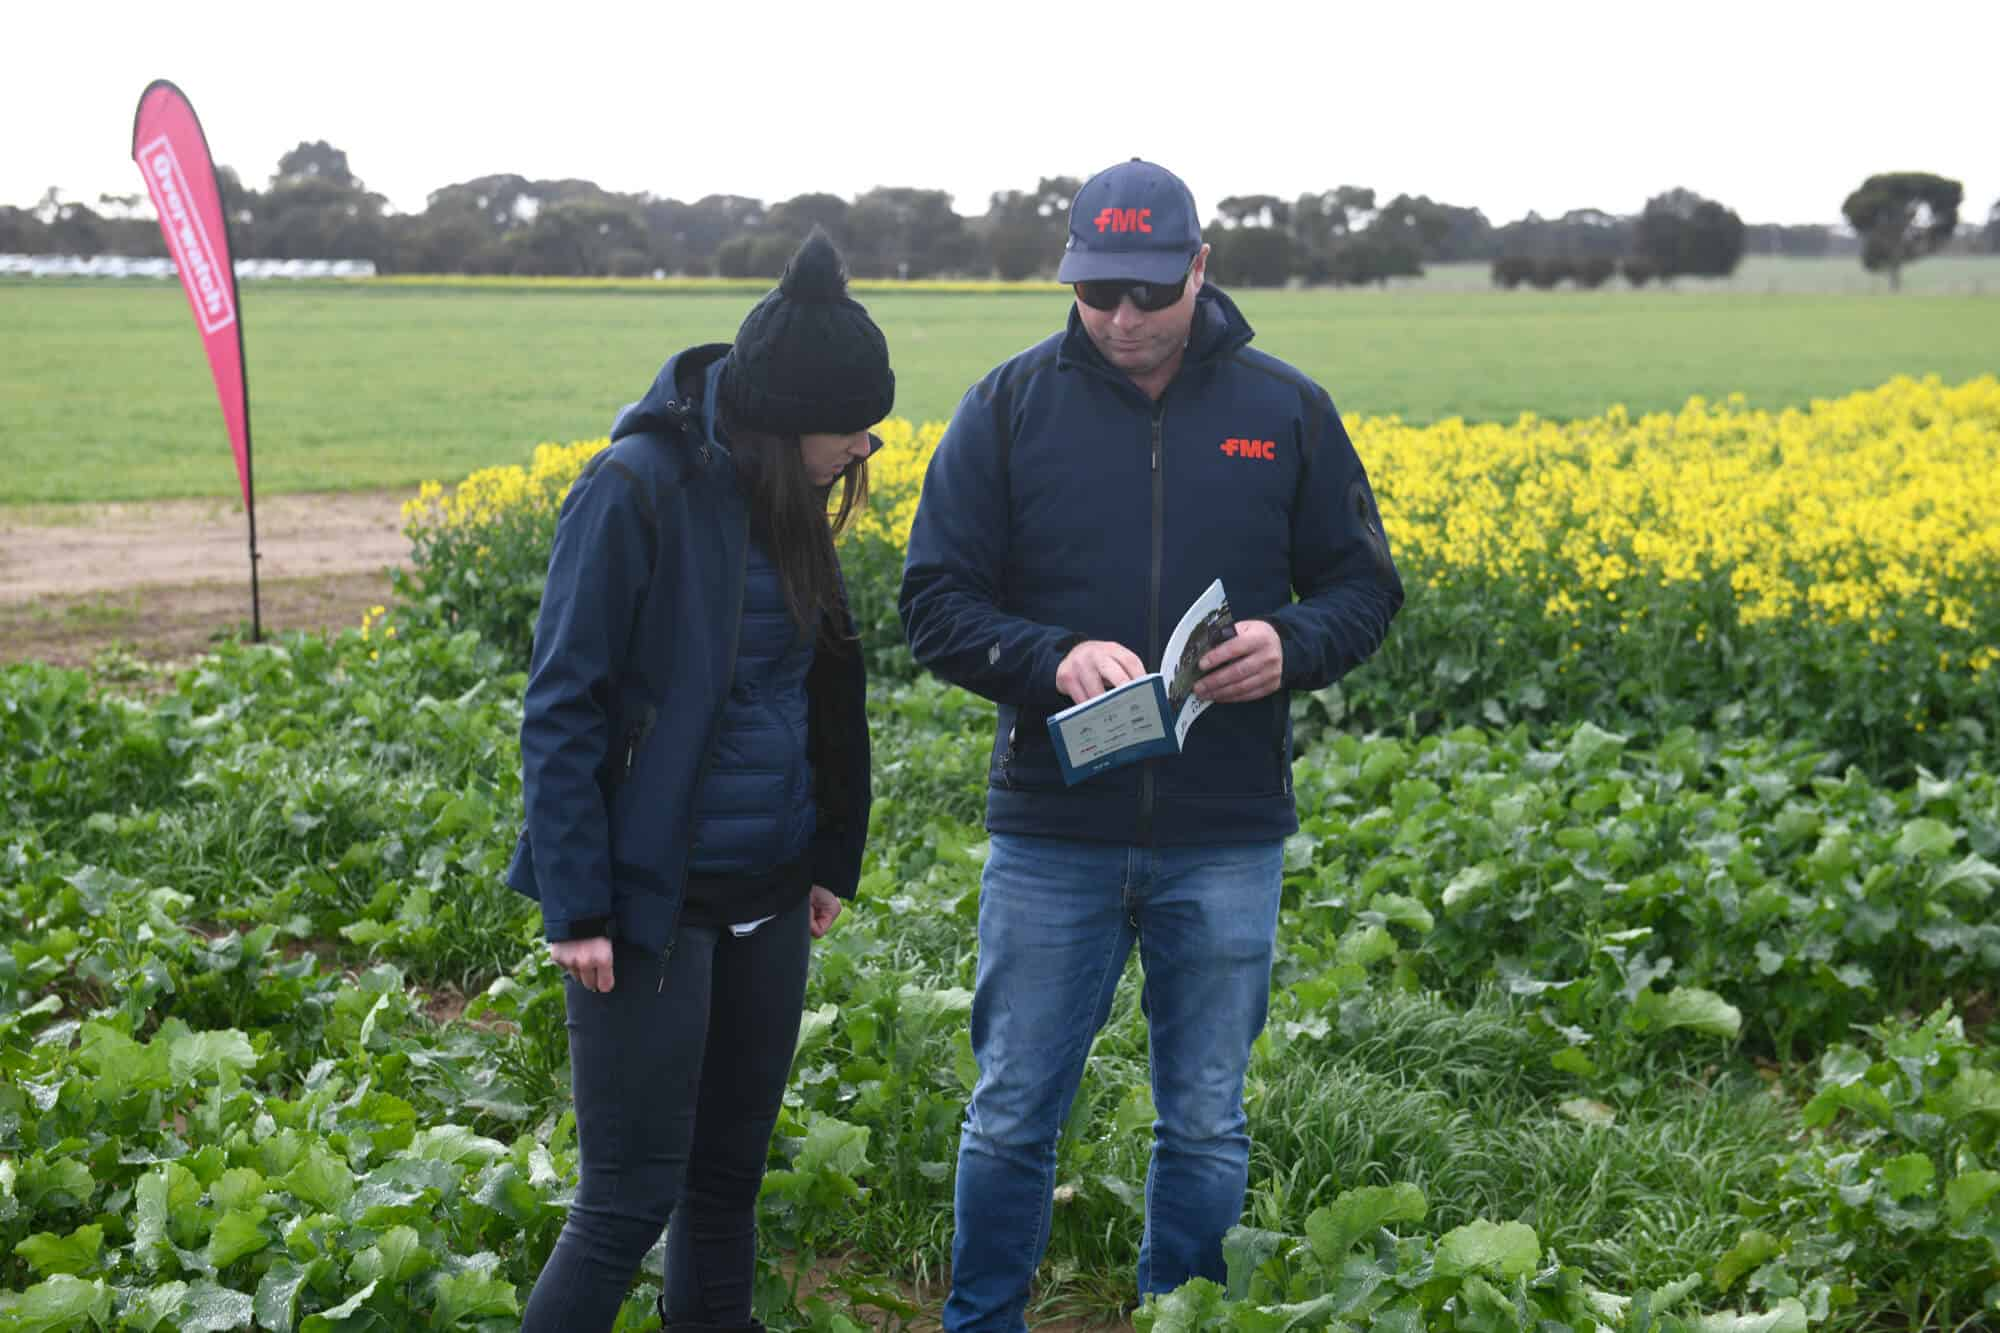 FMC Area Business Manager, Kent Hair and FMC Marketing Associate, Georgia Greaves discussing the performance of Overwatch® Herbicide at the Inverleigh Southern Farming Systems field day